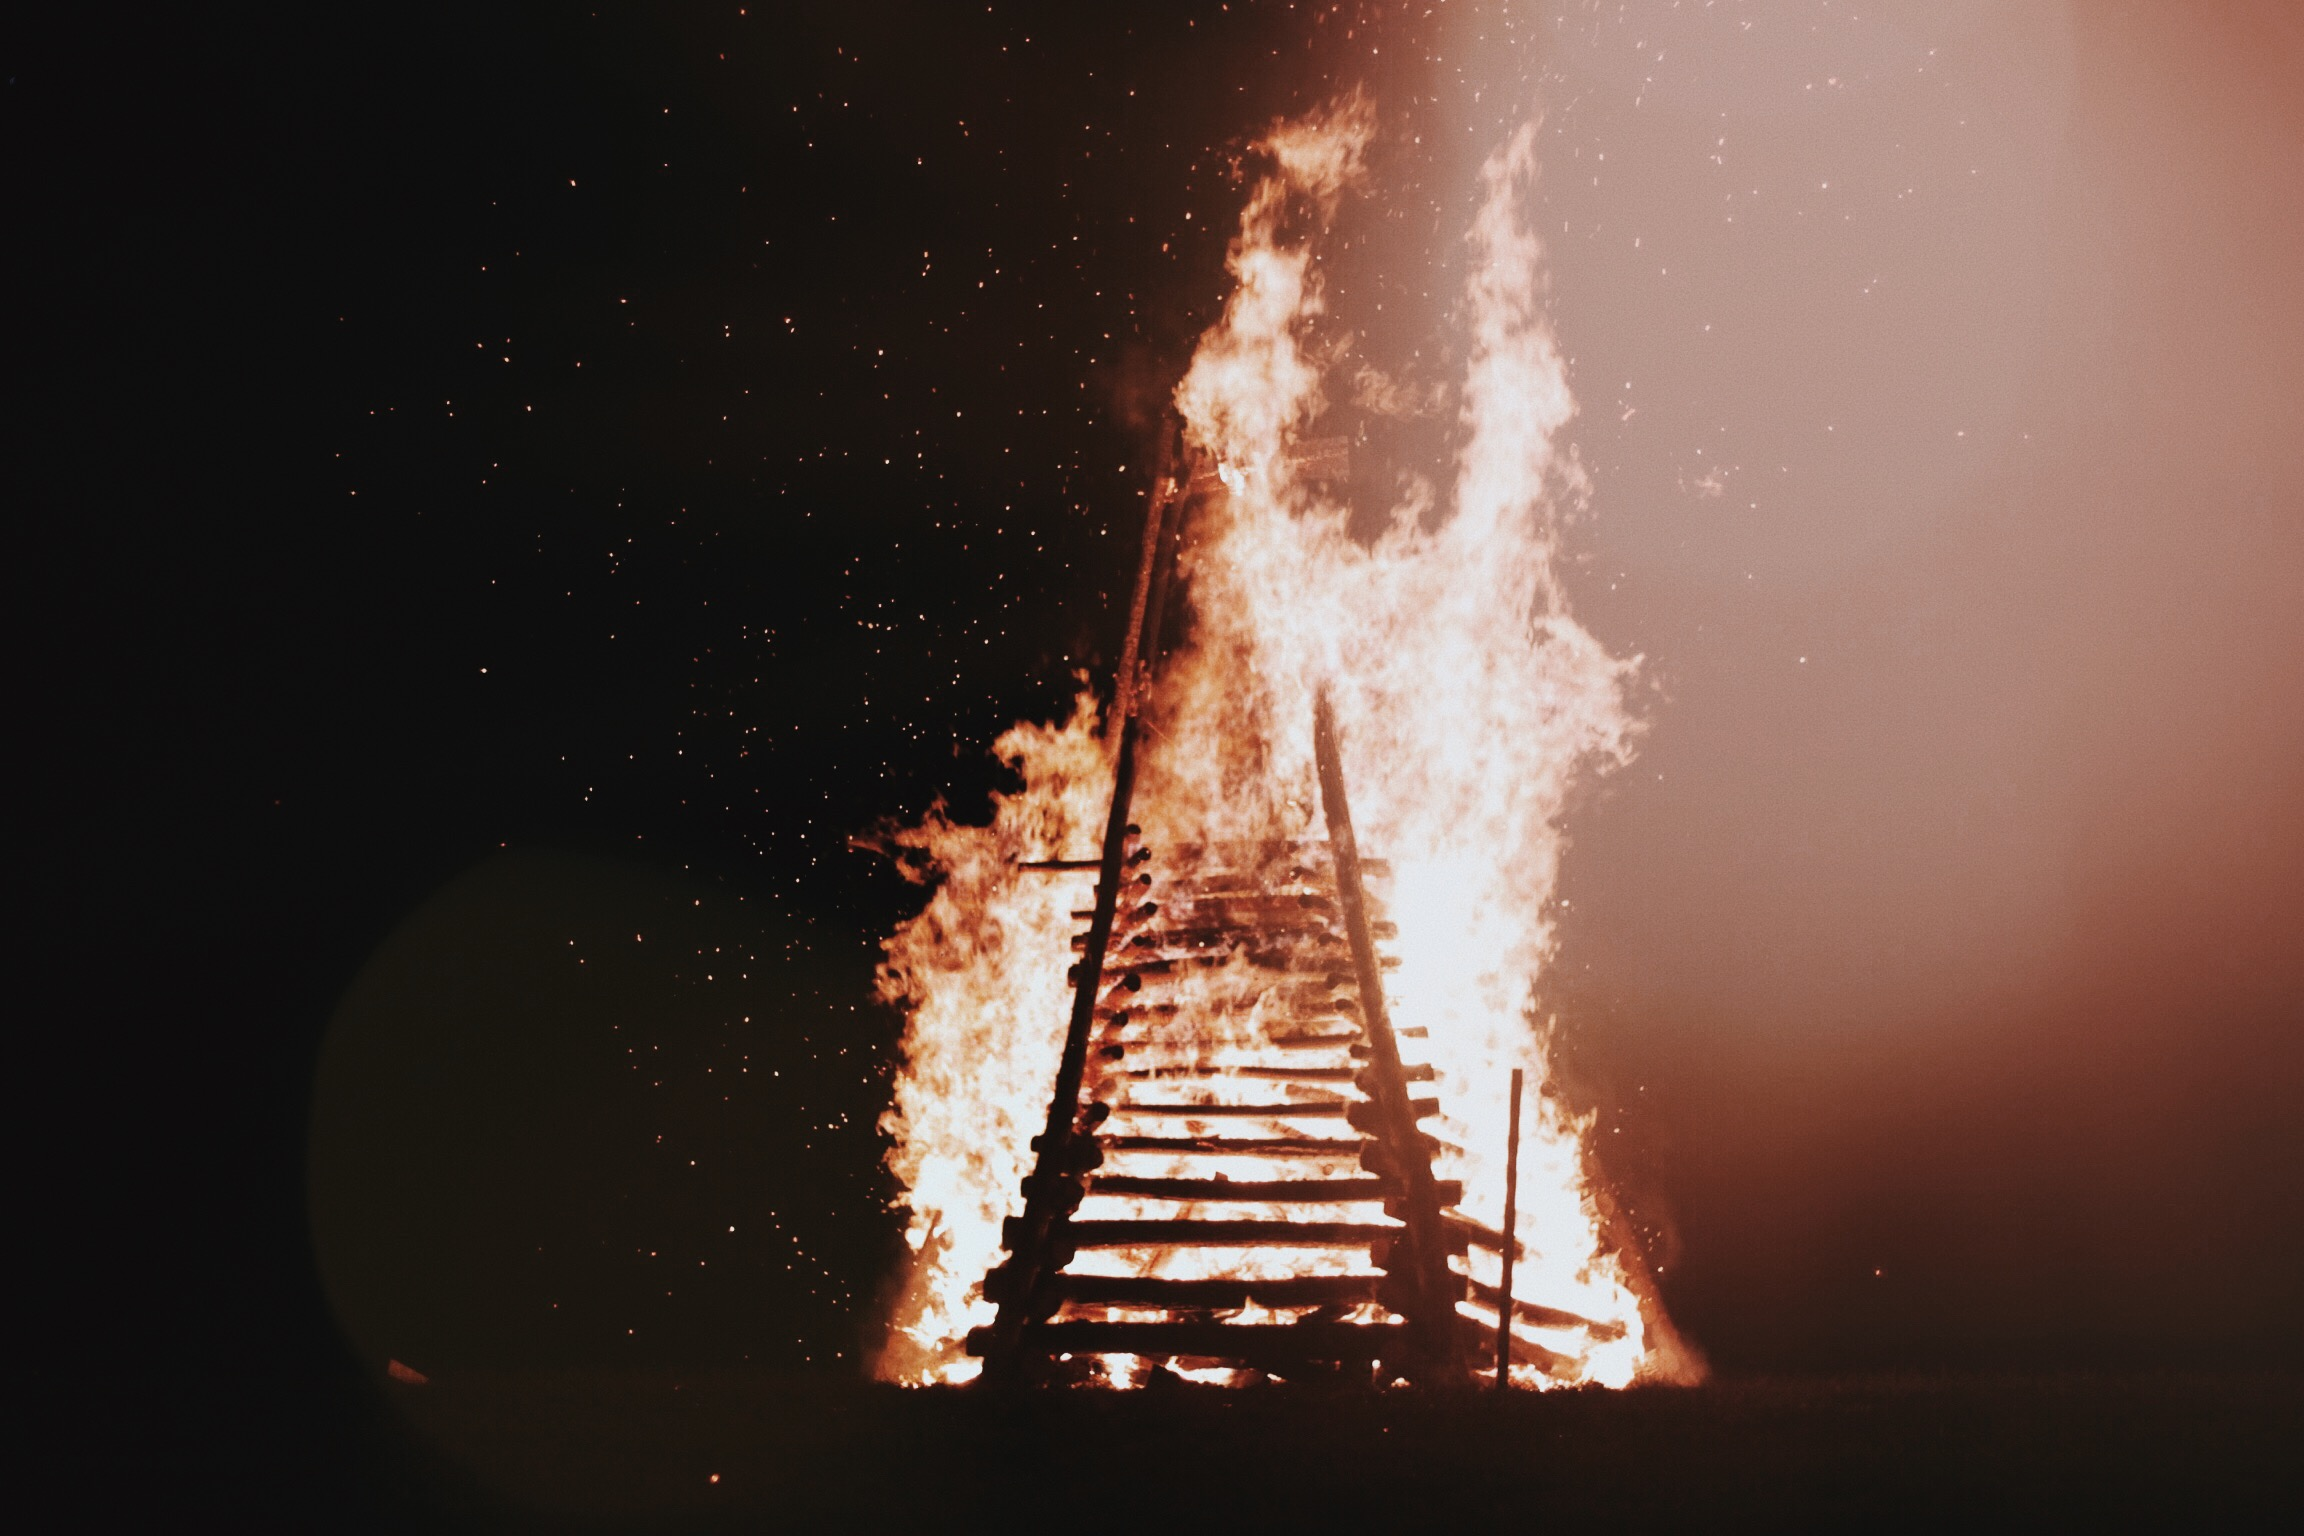 Levee Bonfire | Oui We by Andi Eaton